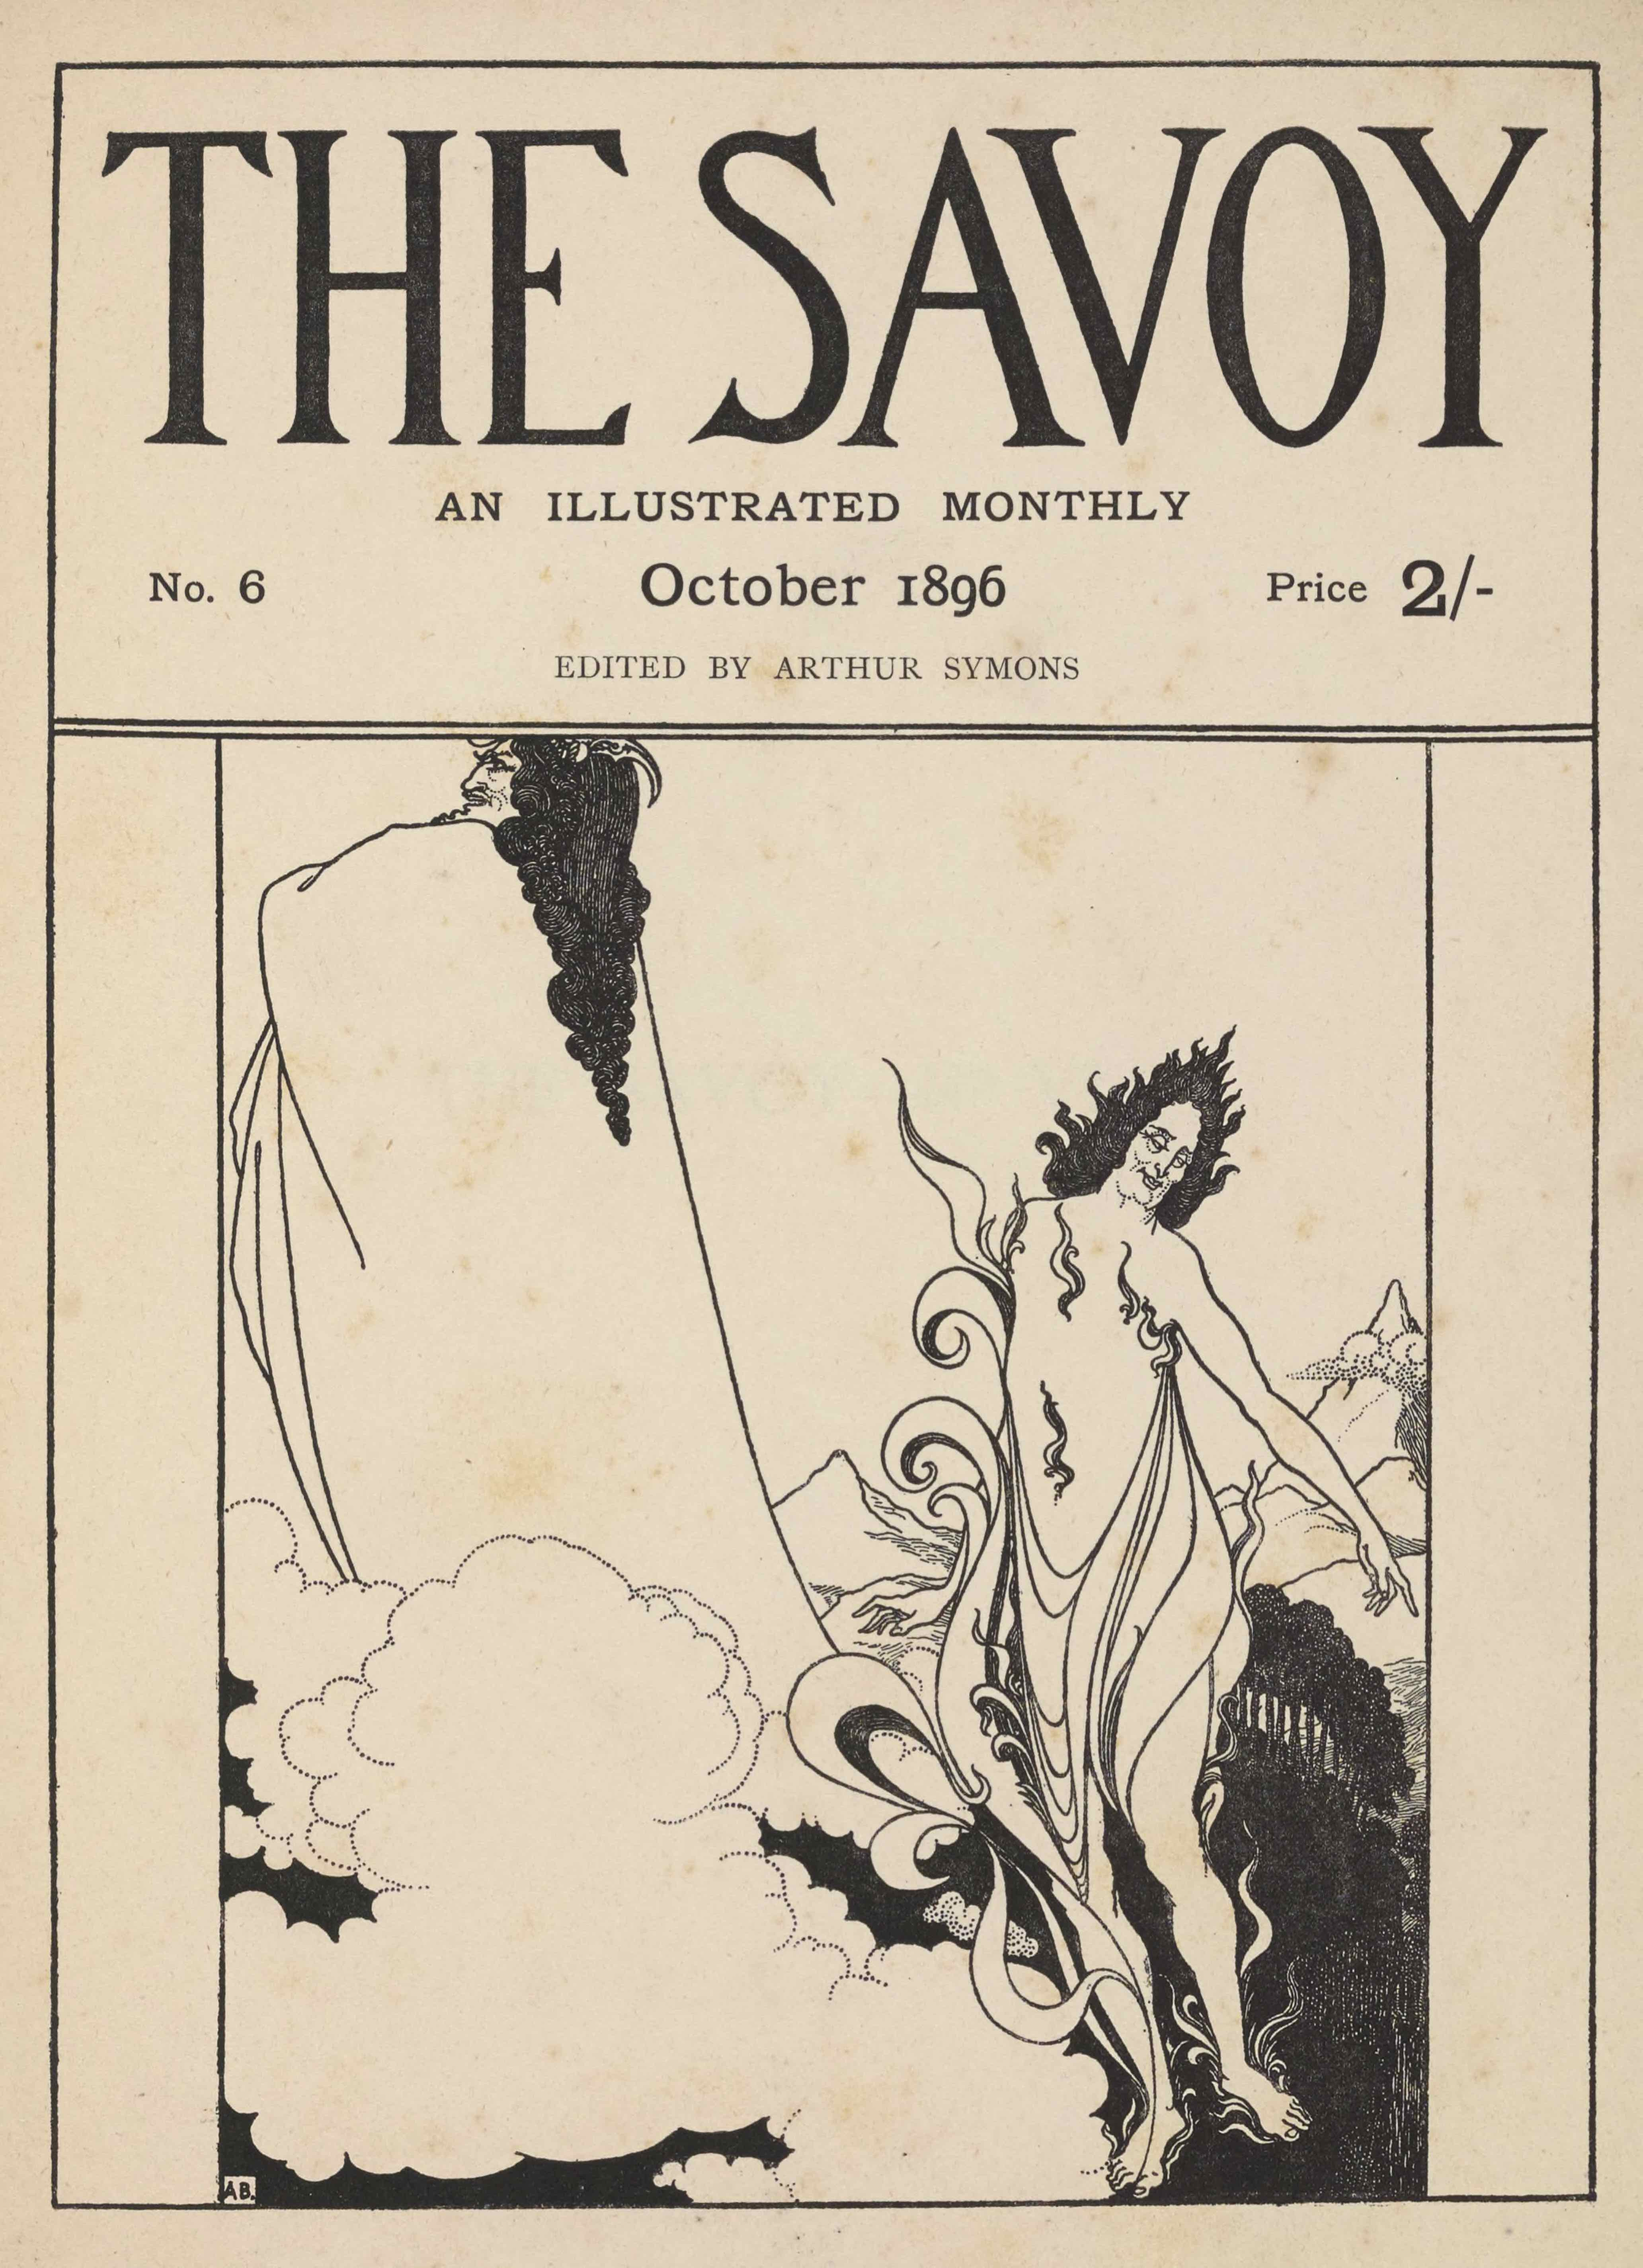 "The cover design, in portrait orientation, combines letterpress and a line-block reproduction of a pen-and-ink design by Aubrey Beardsley. The publishing information occupies the top third of the page, followed below by artwork. The page is divided into boxes. At the top, there is a rectangle taking up one-third of the page. Inside the rectangle is the text: ""THE SAVOY"" [caps] in display type, comprising the top two-thirds of the box in height. Below that text, and centered, set in smaller font, appears: ""AN ILLUSTRATED MONTHLY"" [caps]. In the line below that there is small text aligned to the left side that says: ""No. 6"". In the same line, centred, is the text: ""October 1896"". In the same line, right aligned, there is the text: ""Price 2/-"". One line below and centered the letterpress reads: ""EDITED BY ARTHUR SYMONS"" [caps]. The artwork below is of two supernatural figures floating above a landscape; they appear to be characters from Wagner's opera, Das Rheingold, Loge, the god of fire, and Wotan, king of the gods (compare Savoy volume 2 pa 193). .The supernatural figure in the foreground is on the right side of the page and takes up about half the framed space in height. Its bare feet rest on the bottom frame of the illustration. It floats just to the right of a cloud that occupies the centre bottom left of the picture frame. It is, facing towards the viewer, with its head turned left and its left arm pointing out to the right edge of the illustration. It is wearing a loose robe: the fabric wraps around its legs and across its midsection, pinned on both sides by the armpits. The robe is made out of draped fabric. Small flames spread across the figure's torso. One larger flame extends from the figure's right foot up to just past its right shoulder. The figure has black hair that is divided into smaller flame--like strands, which come to a point sticking directly up at the crown of its head. To the right behind the figure is a grove of trees, tightly packed and thick with leaves. Behind this grove stands rolling foothills that lead to a sharply peaked mountain on the right edge of the page, halfway up from the bottom of the page. Behind and to the left of the figure stands another jagged peak, but this one is about half the size of the other, and doesn't rise so sharply. To the left of the first figure are puffy rounded clouds that extend to the left edge of the page, and continue upwards to just cover about one-quarter of the page. From amongst these clouds arises the second supernatural figure, located behind and to the left of the first. It extends to the very top and left edges of the artwork, its head resting just below the banner of publishing information. It is facing towards the left, with its body turned away from the viewer. It is wearing a long robe that covers the entirety of its body, but it is held up in such a way to suggest that its arms are crossed high up on its chest. It has long curled black hair that reaches halfway down its back, tapering to a point. Its face is in profile, with a pointed chin and defined nose. In its hair it has what might be a horn that curves back, or a type of hair accessory. In the bottom left corner a white box contains the black initials of the artist: A.B."